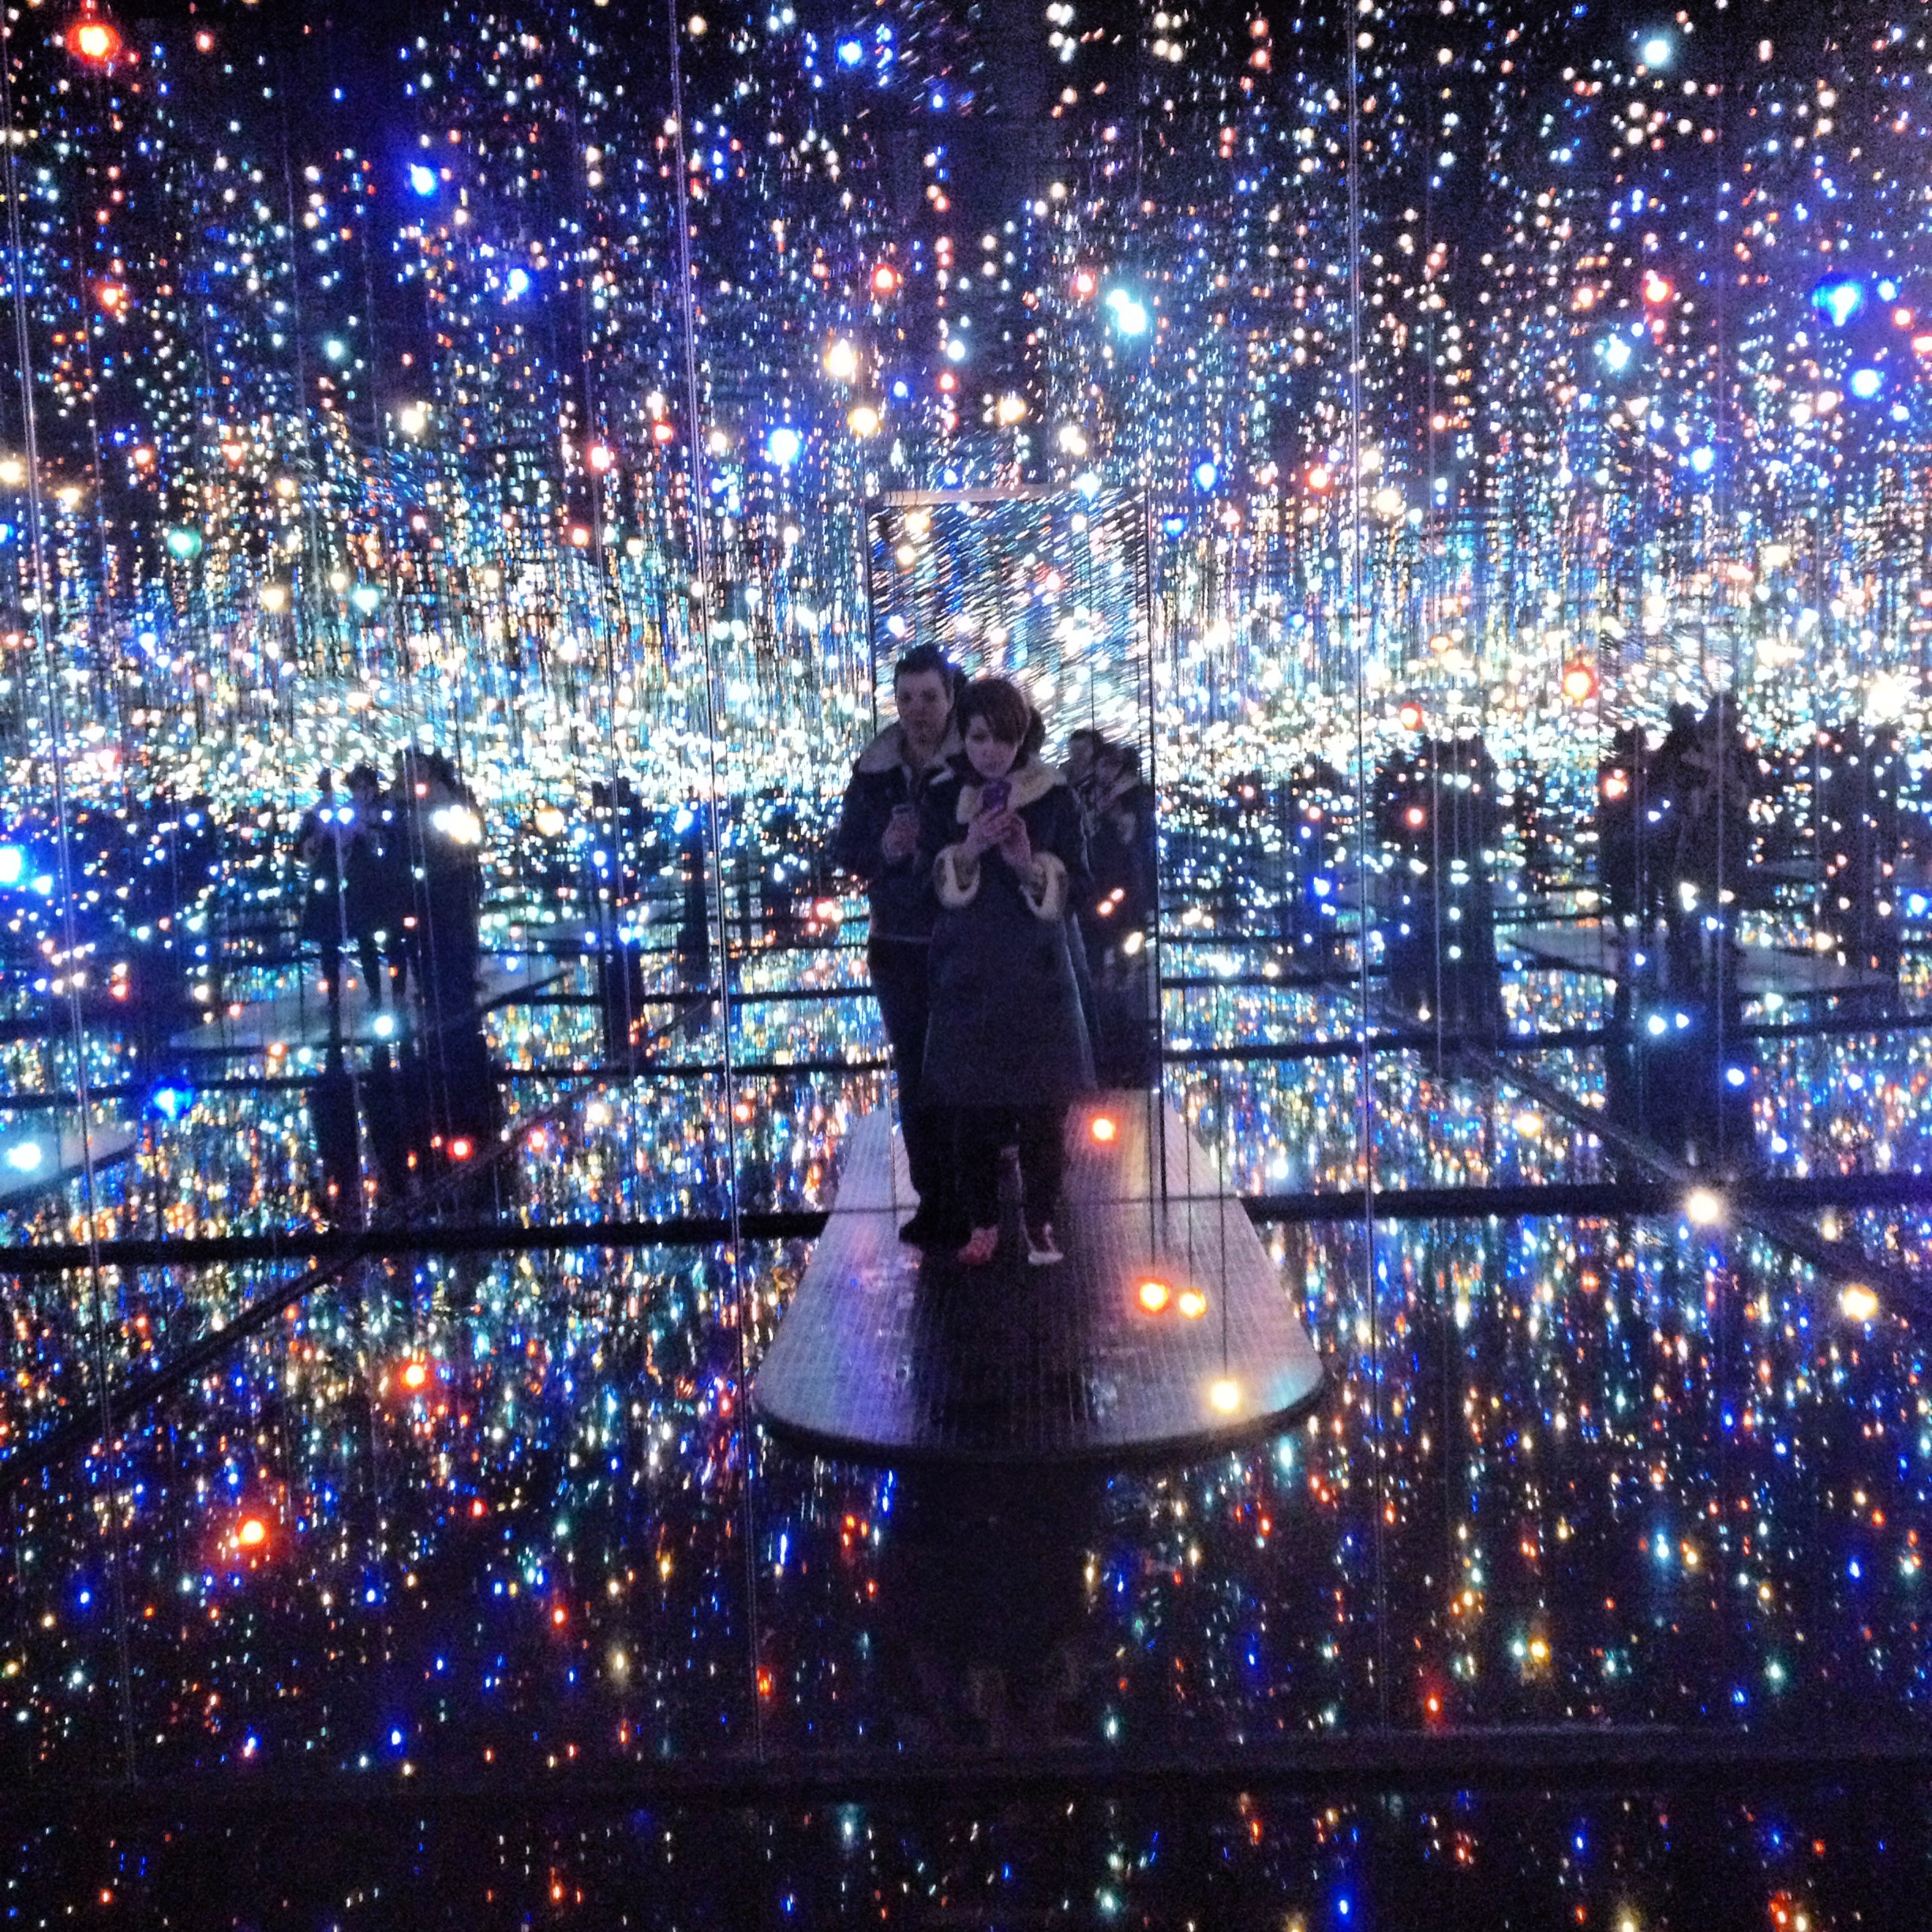 Yayoi Kusama S Infinity Room David Zwirner December 2013 Heather Bryant